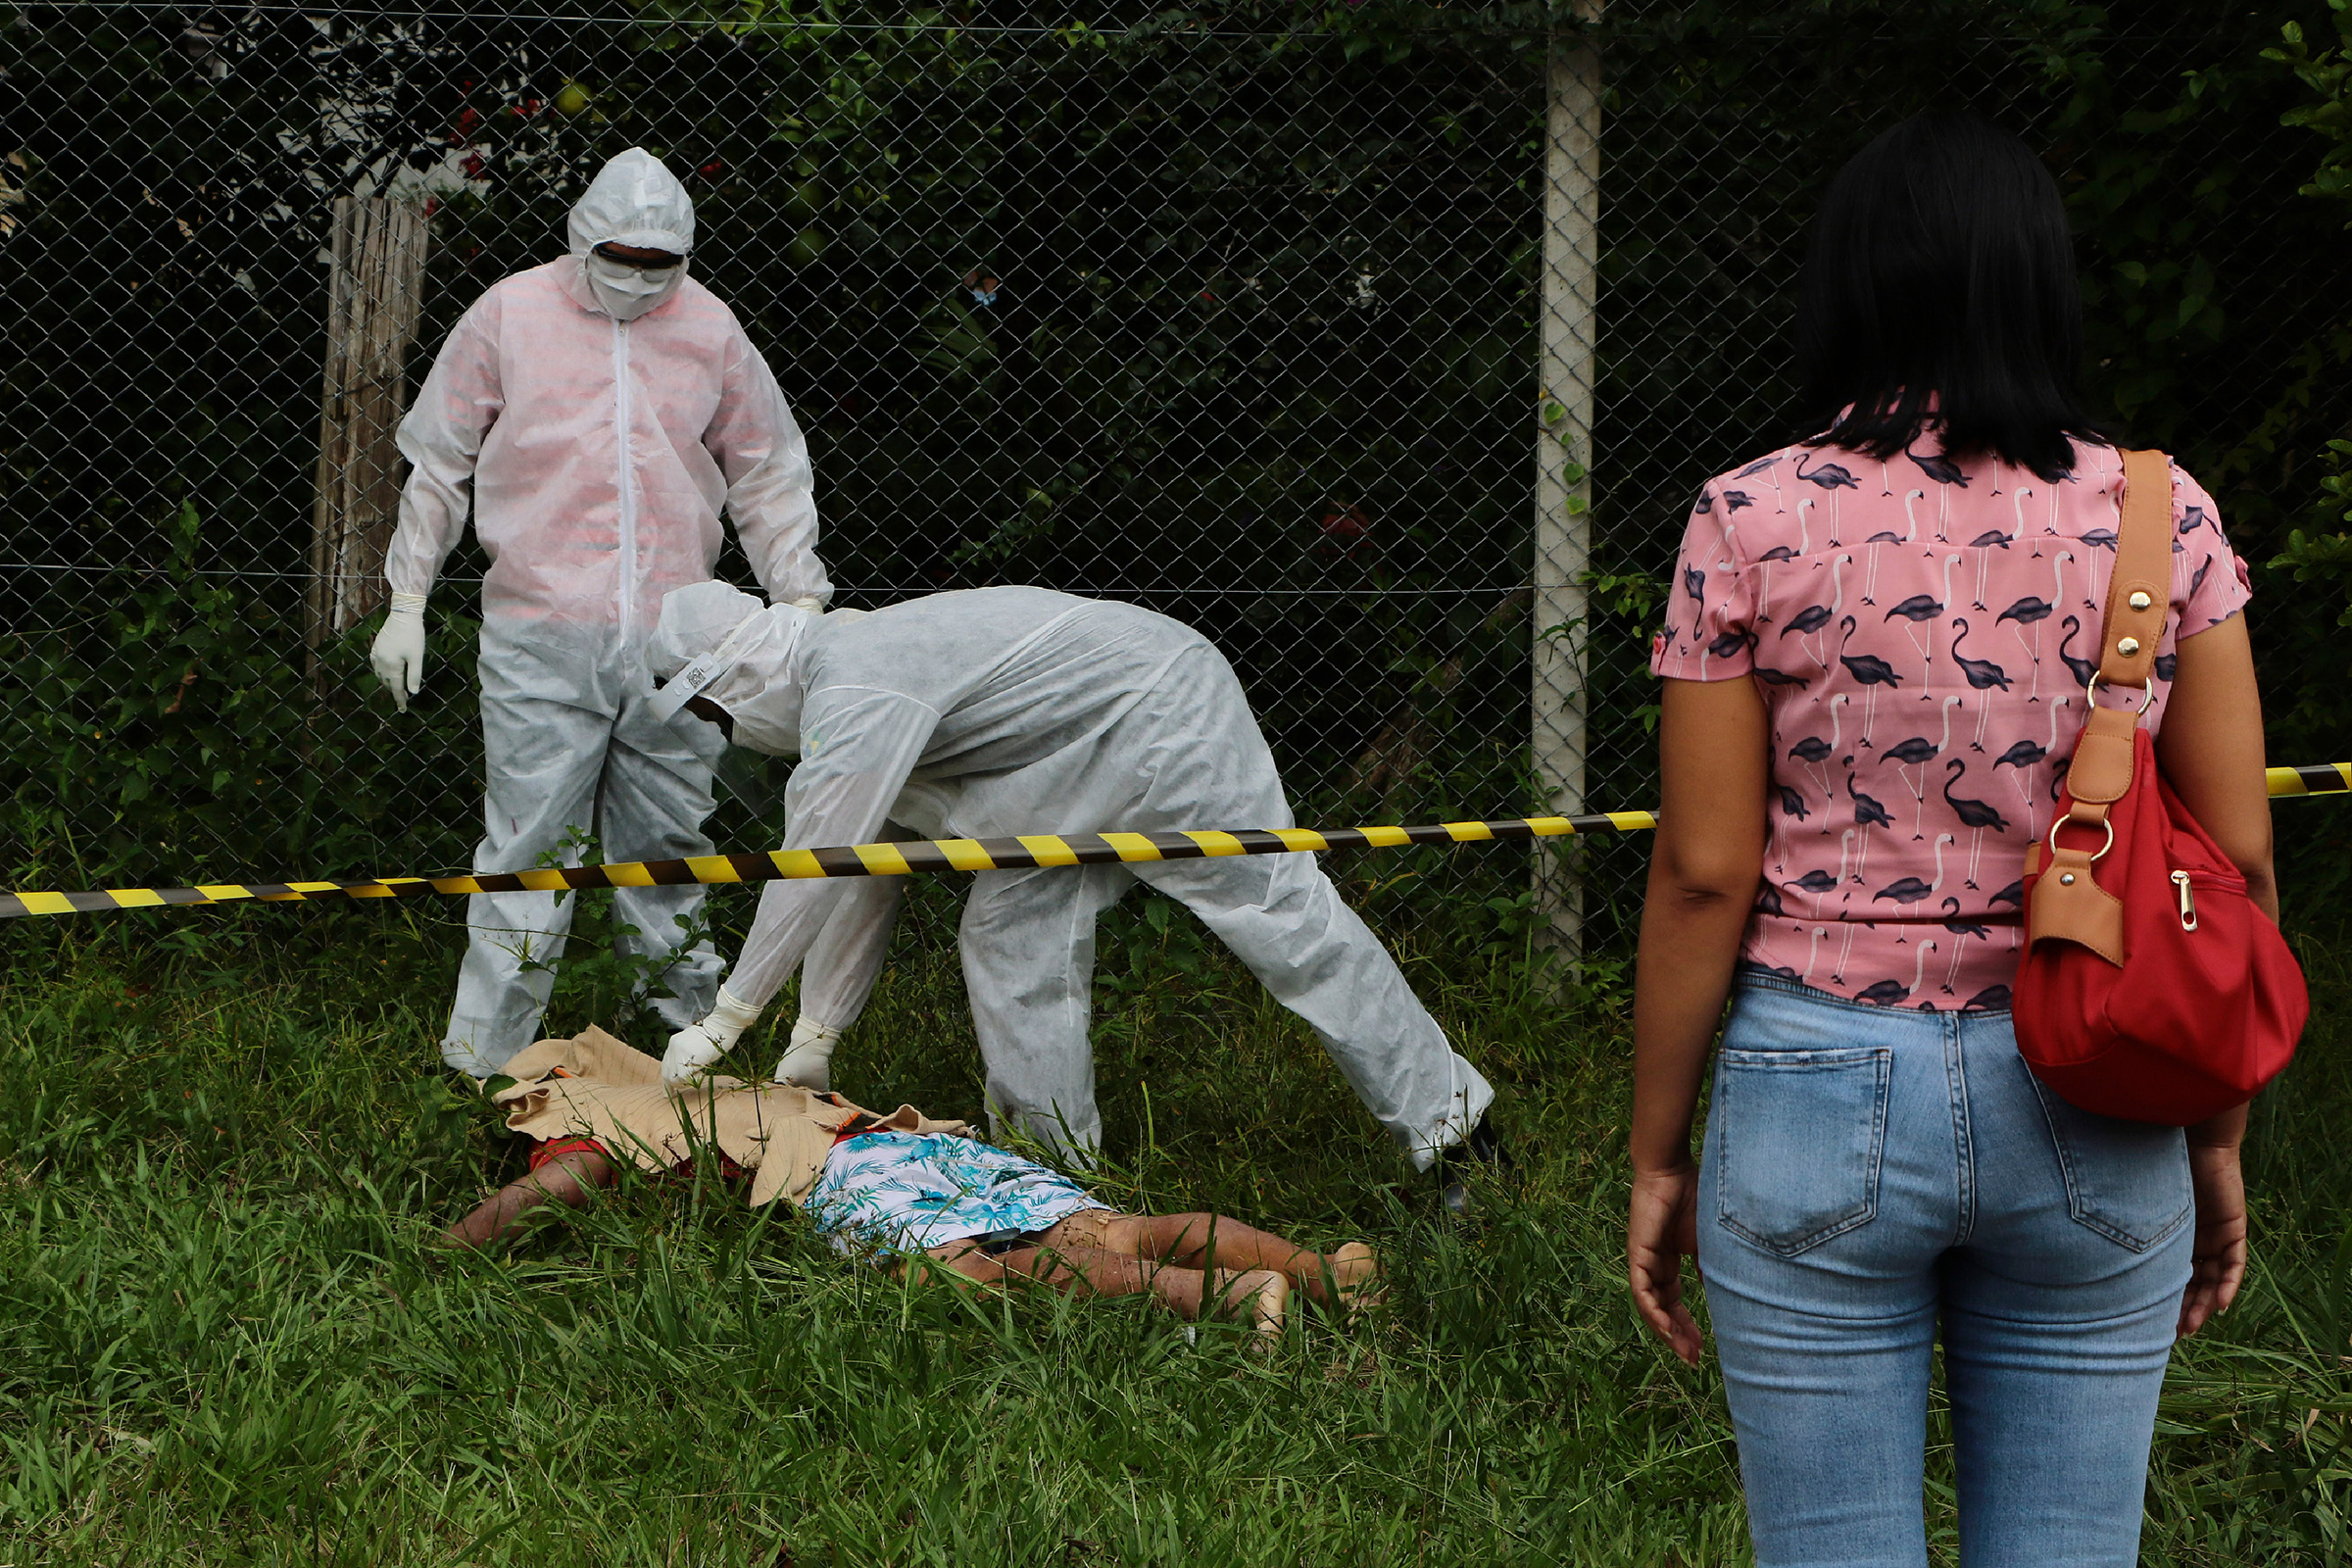 Government funeral workers cover the body of Arlen Laranjeira Bezerra, 39, near the Delphina Rinaldi Abdel Aziz Hospital in Manaus, in the Brazilian state of Amazonas, on May 5. Bezerra had been admitted to the hospital to undergo treatment for COVID-19. After escaping from the hospital at dawn, his body was found by family members approximately 650 feet (200 meters) away.